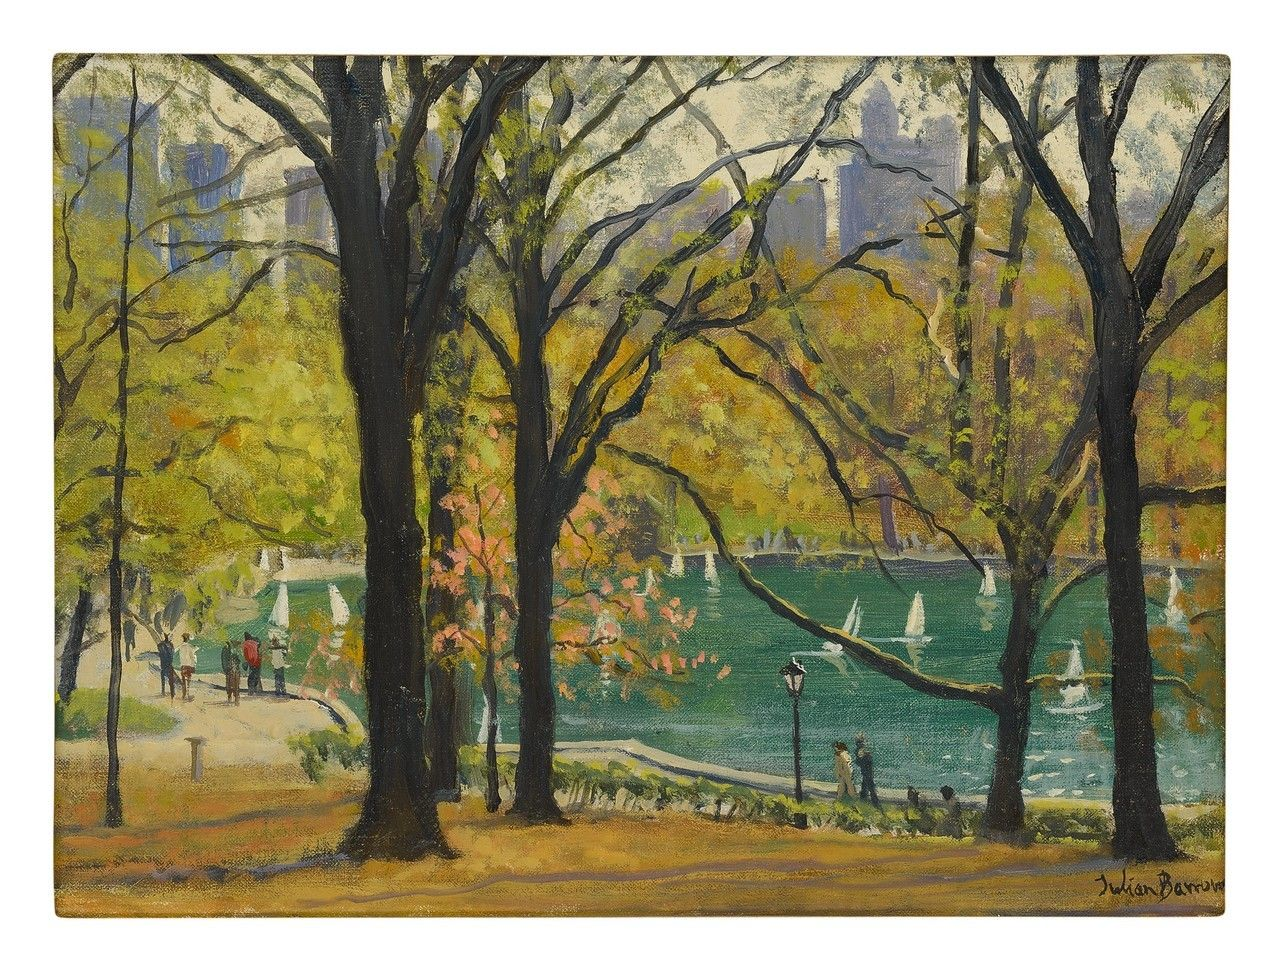 BOATING LAKE, CENTRAL PARK. JULIAN BARROW, 1939 - 2013. Oil on canvas - #central #malerei #painting #park #peinture #pintura #pittura